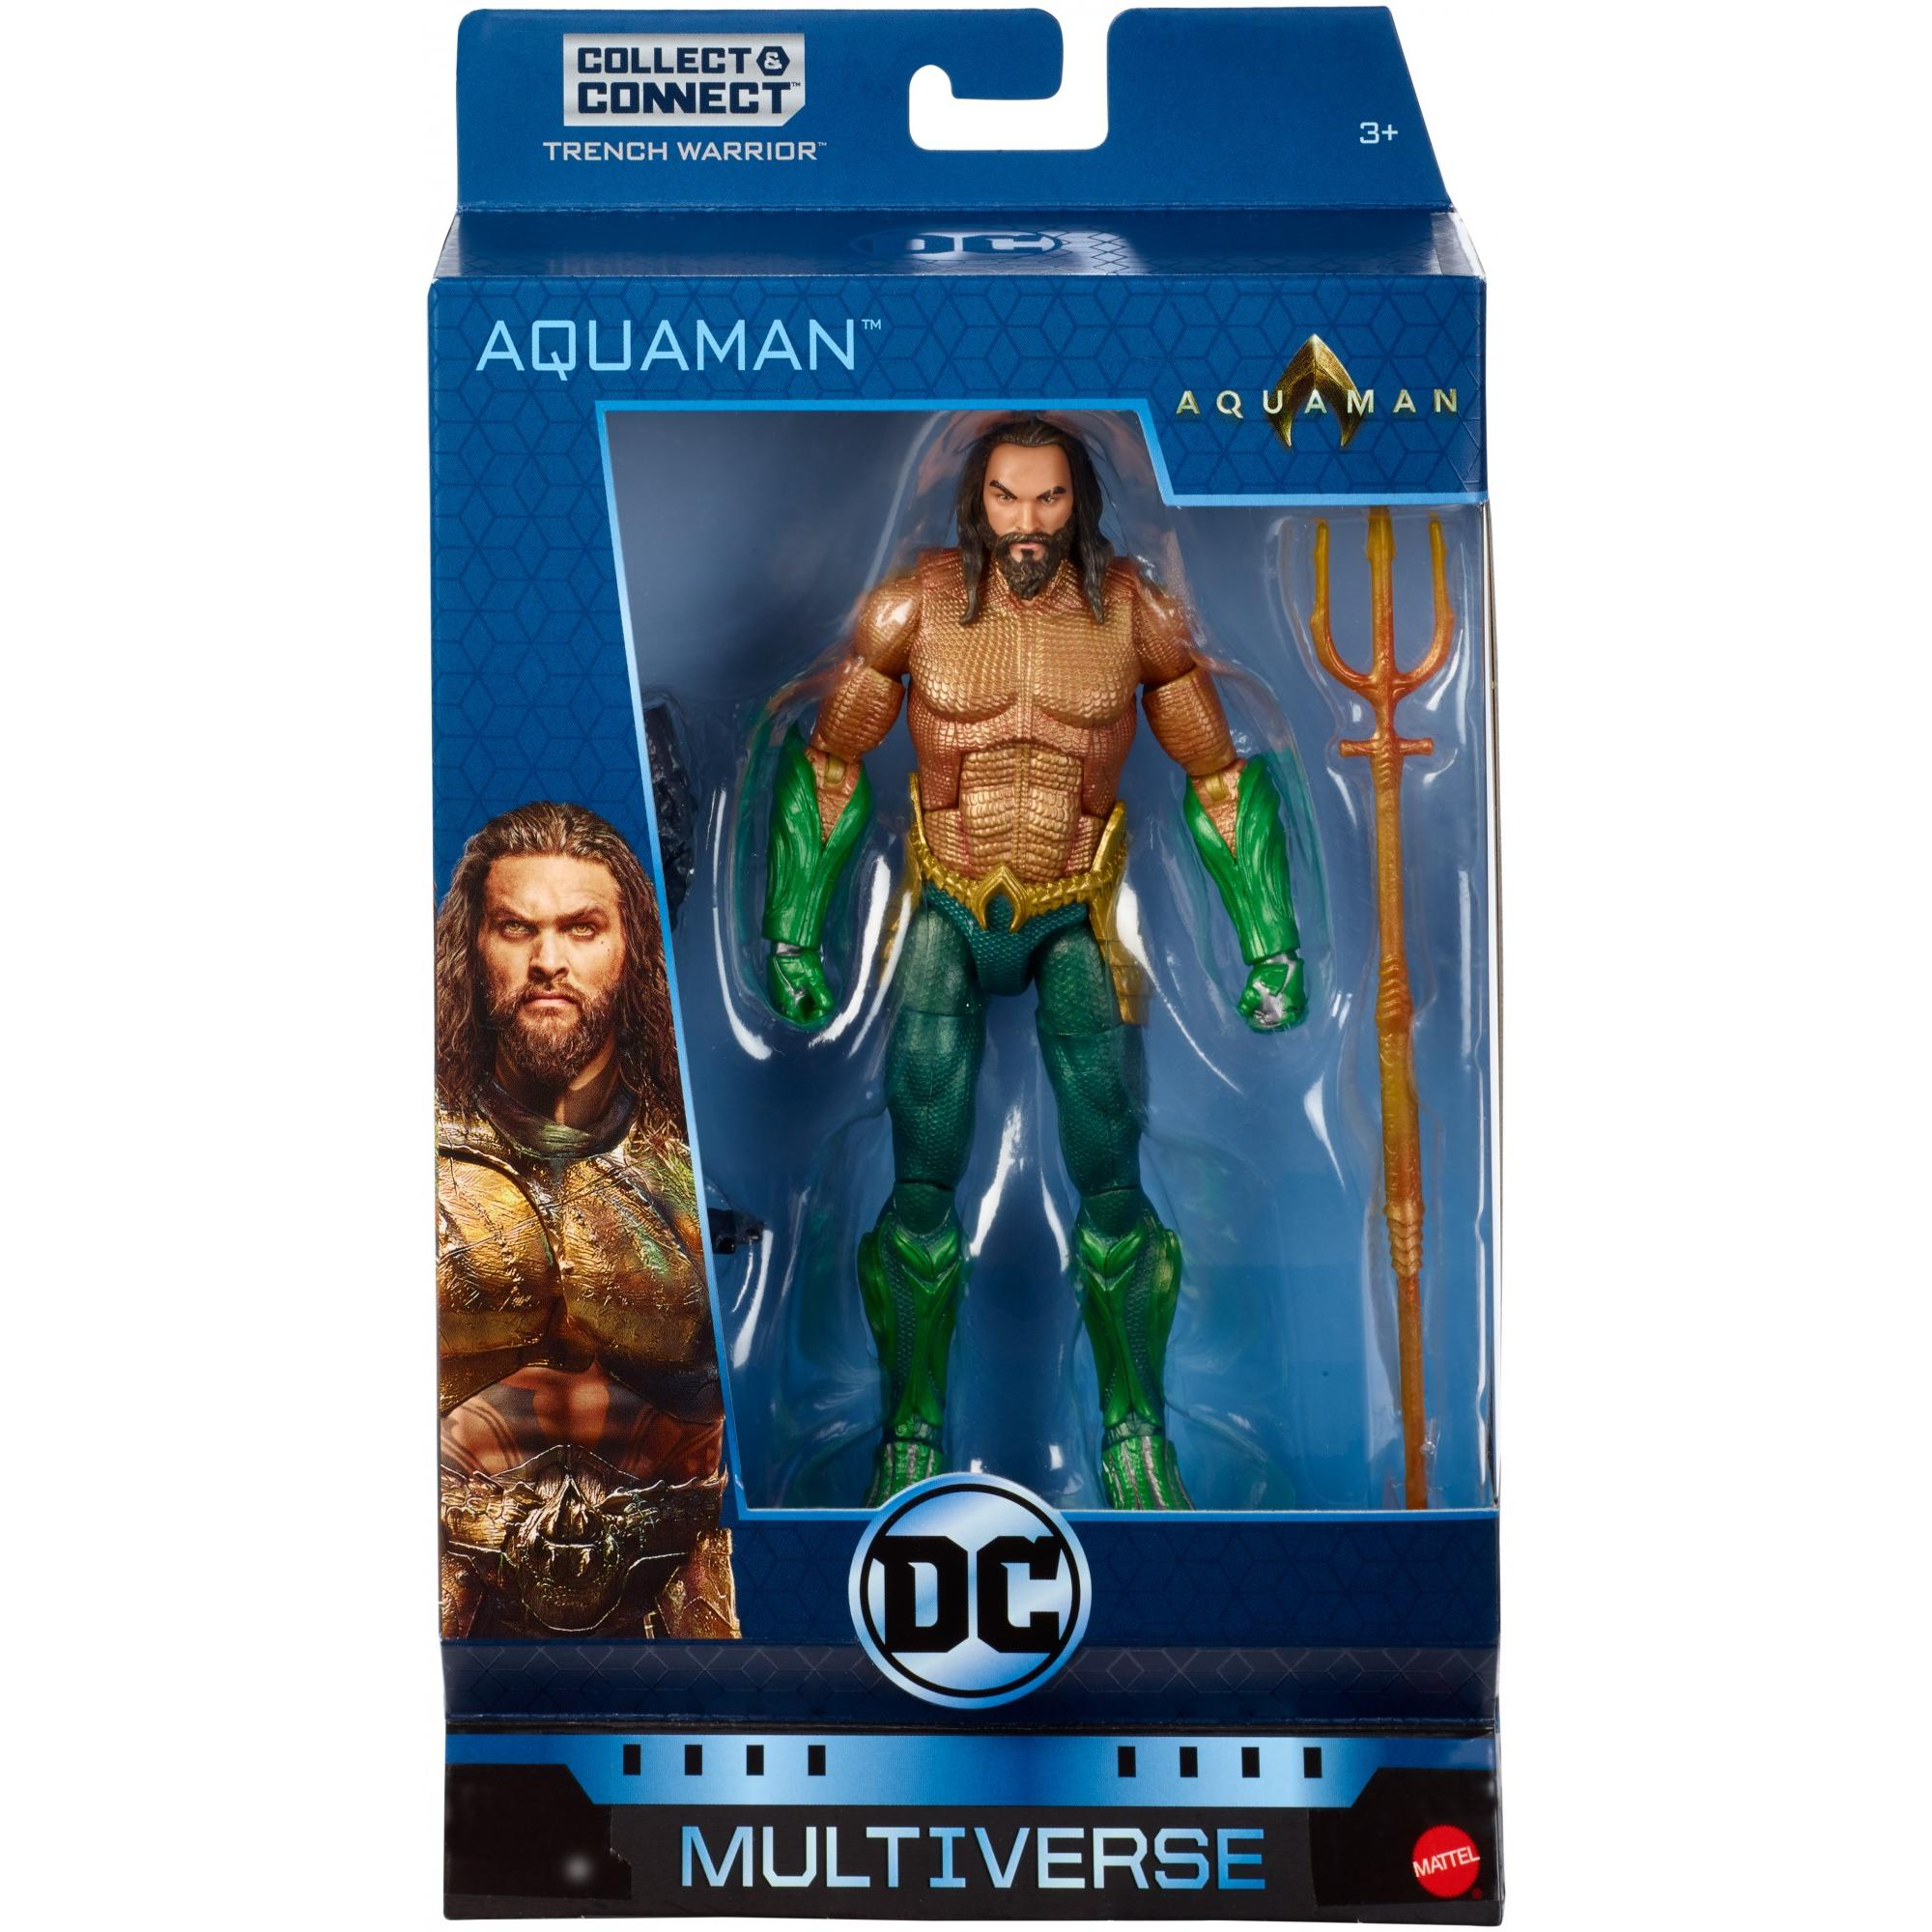 BIB DC Comics Multiverse Vulko from Aquaman Trench Warrior Collect and Connect